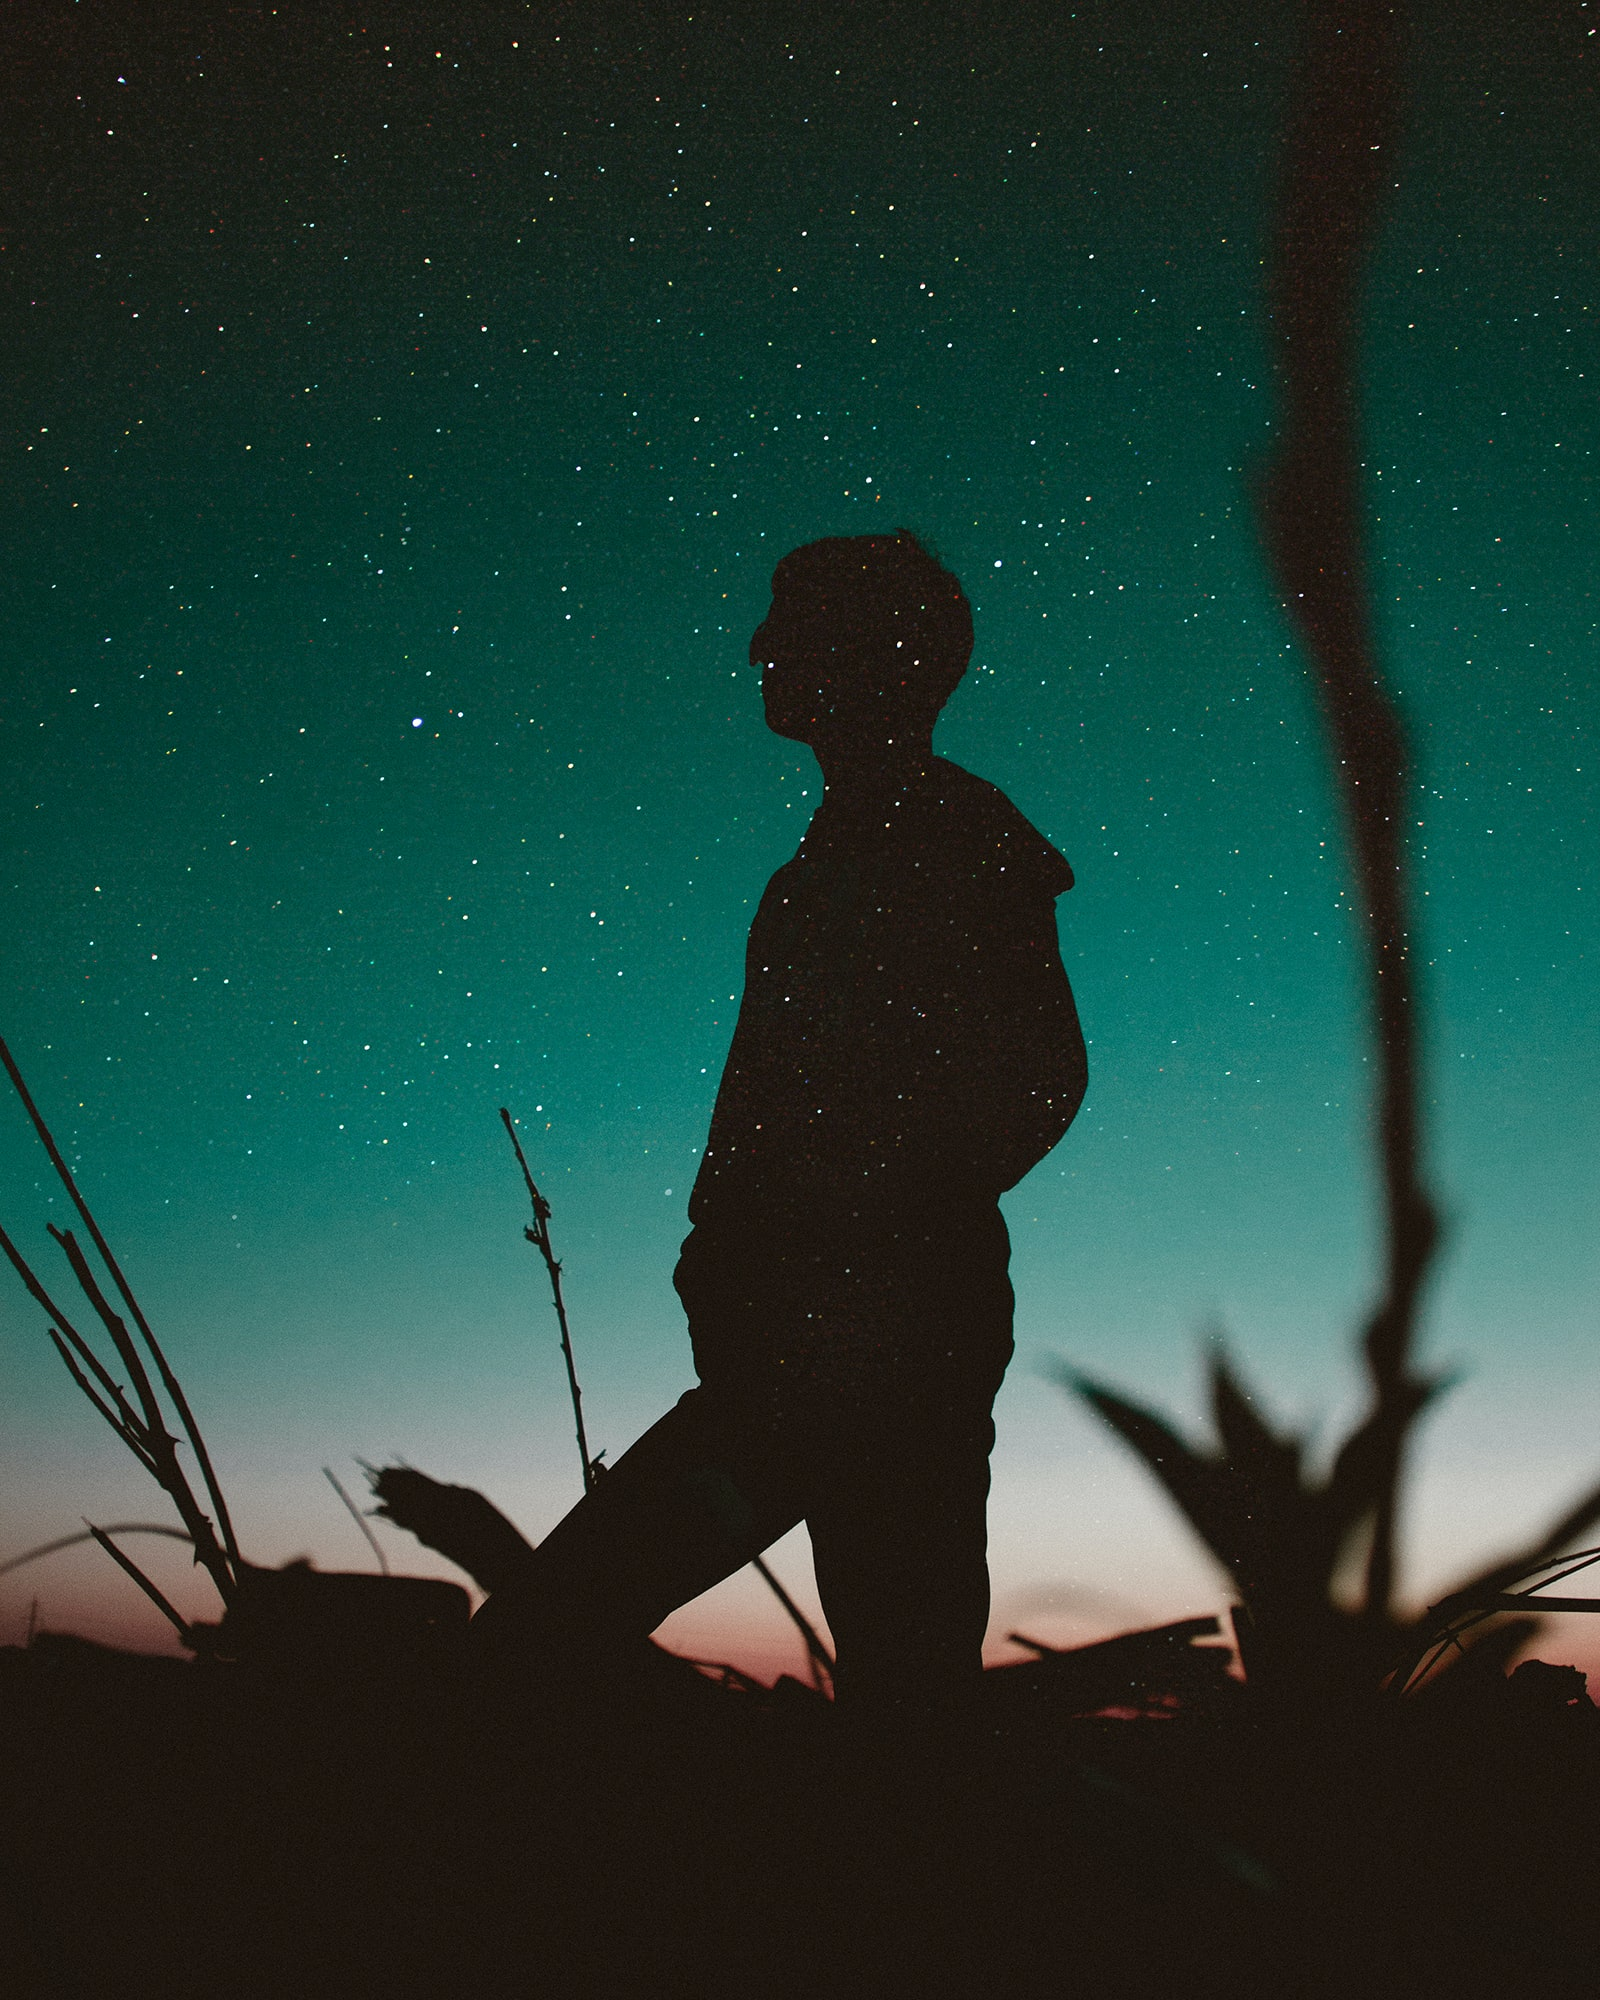 A shot from below of a person in silhouette against a starry, teal night sky